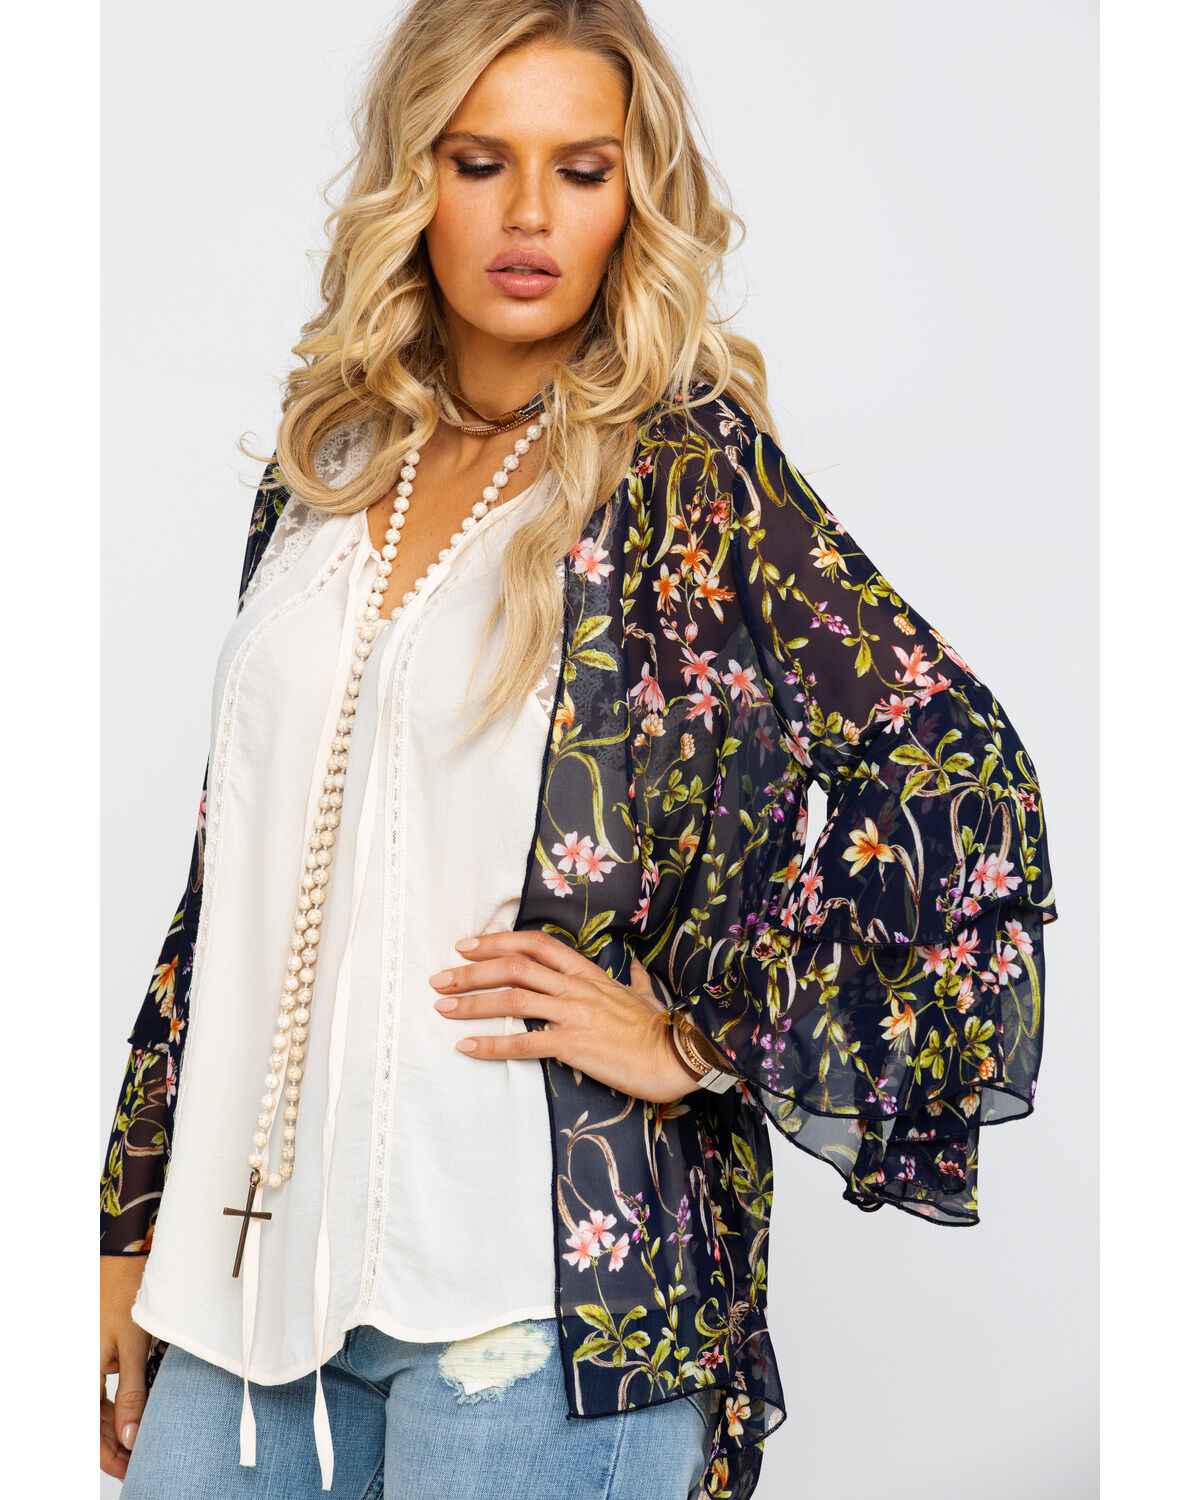 Panhandle Womens Red Label by Multi-Color Floral Print Kimono